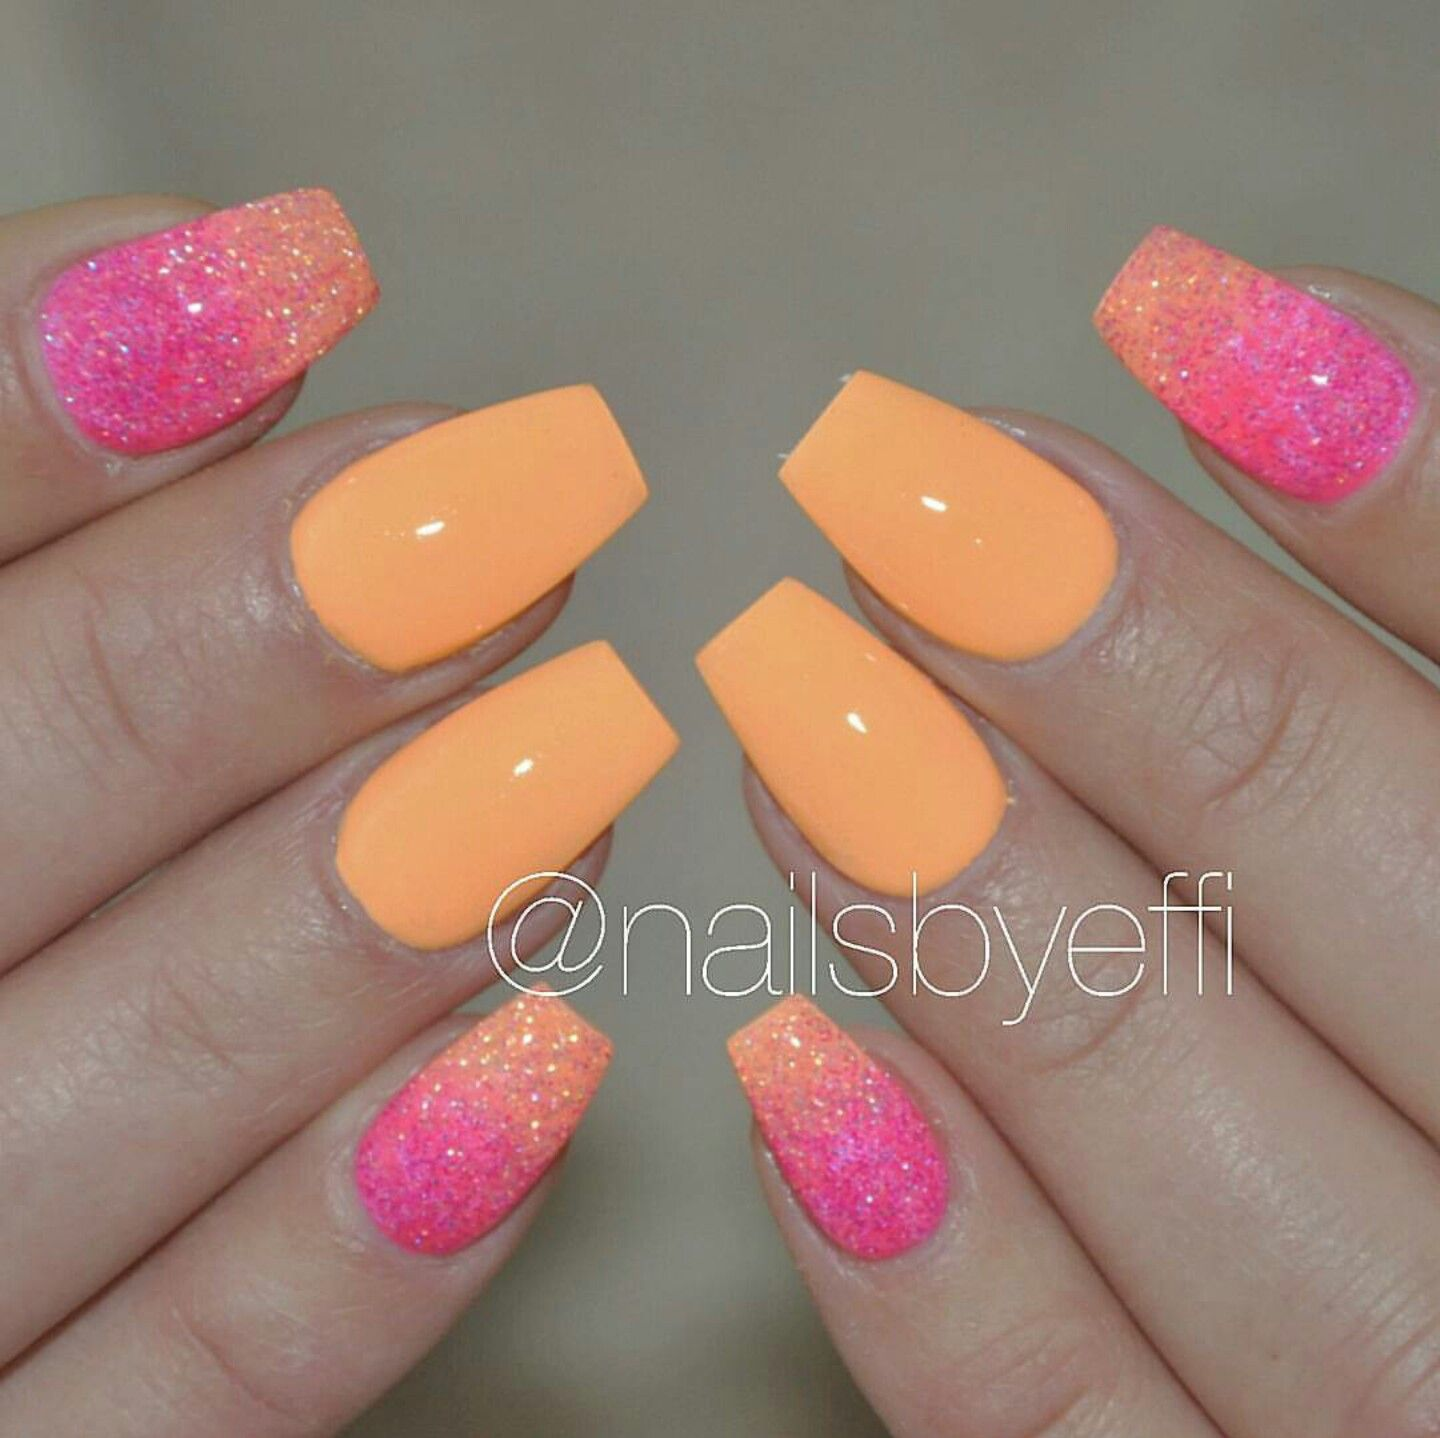 Orange And Pink Neon Glitter Coffin Shaped Nails Coffin Shape Nails Pink Glitter Nails Ombre Nails Glitter